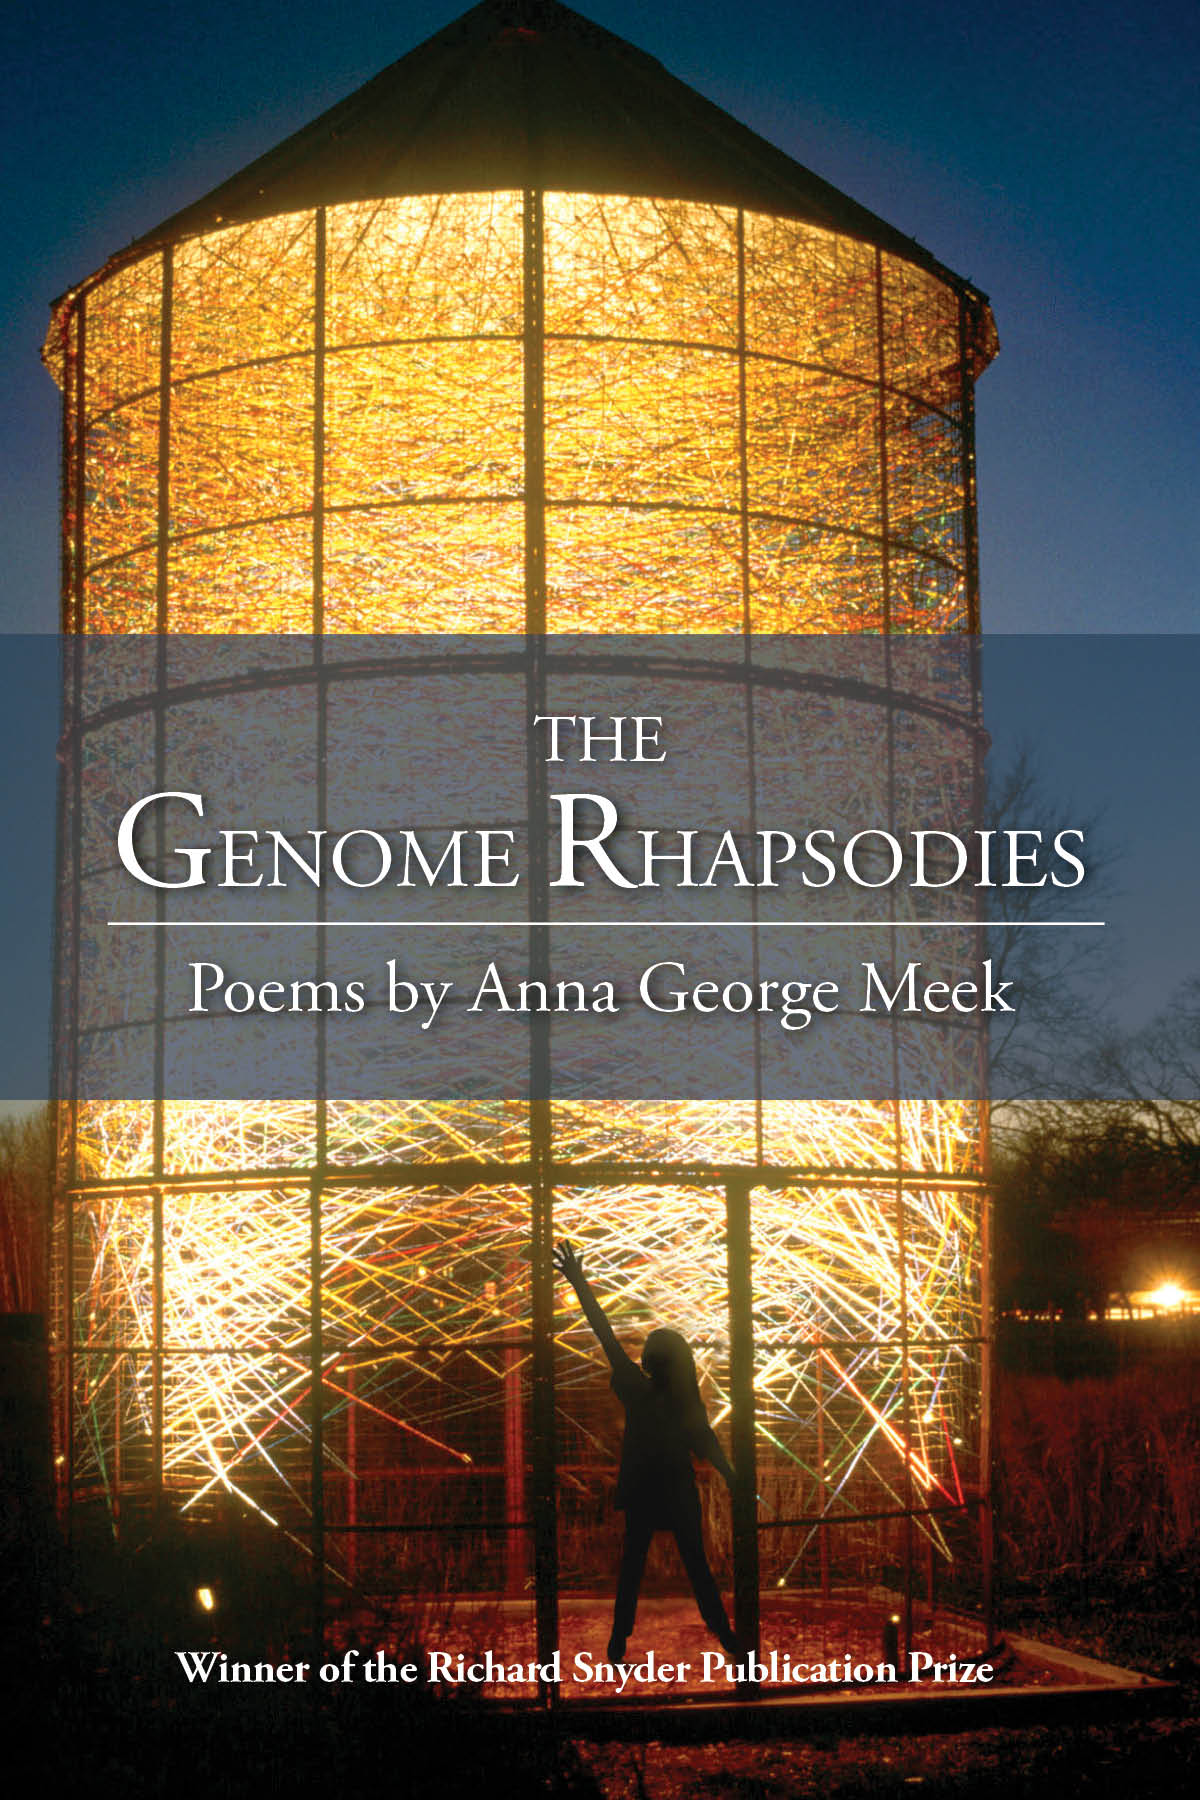 The Genome Rhapsodies